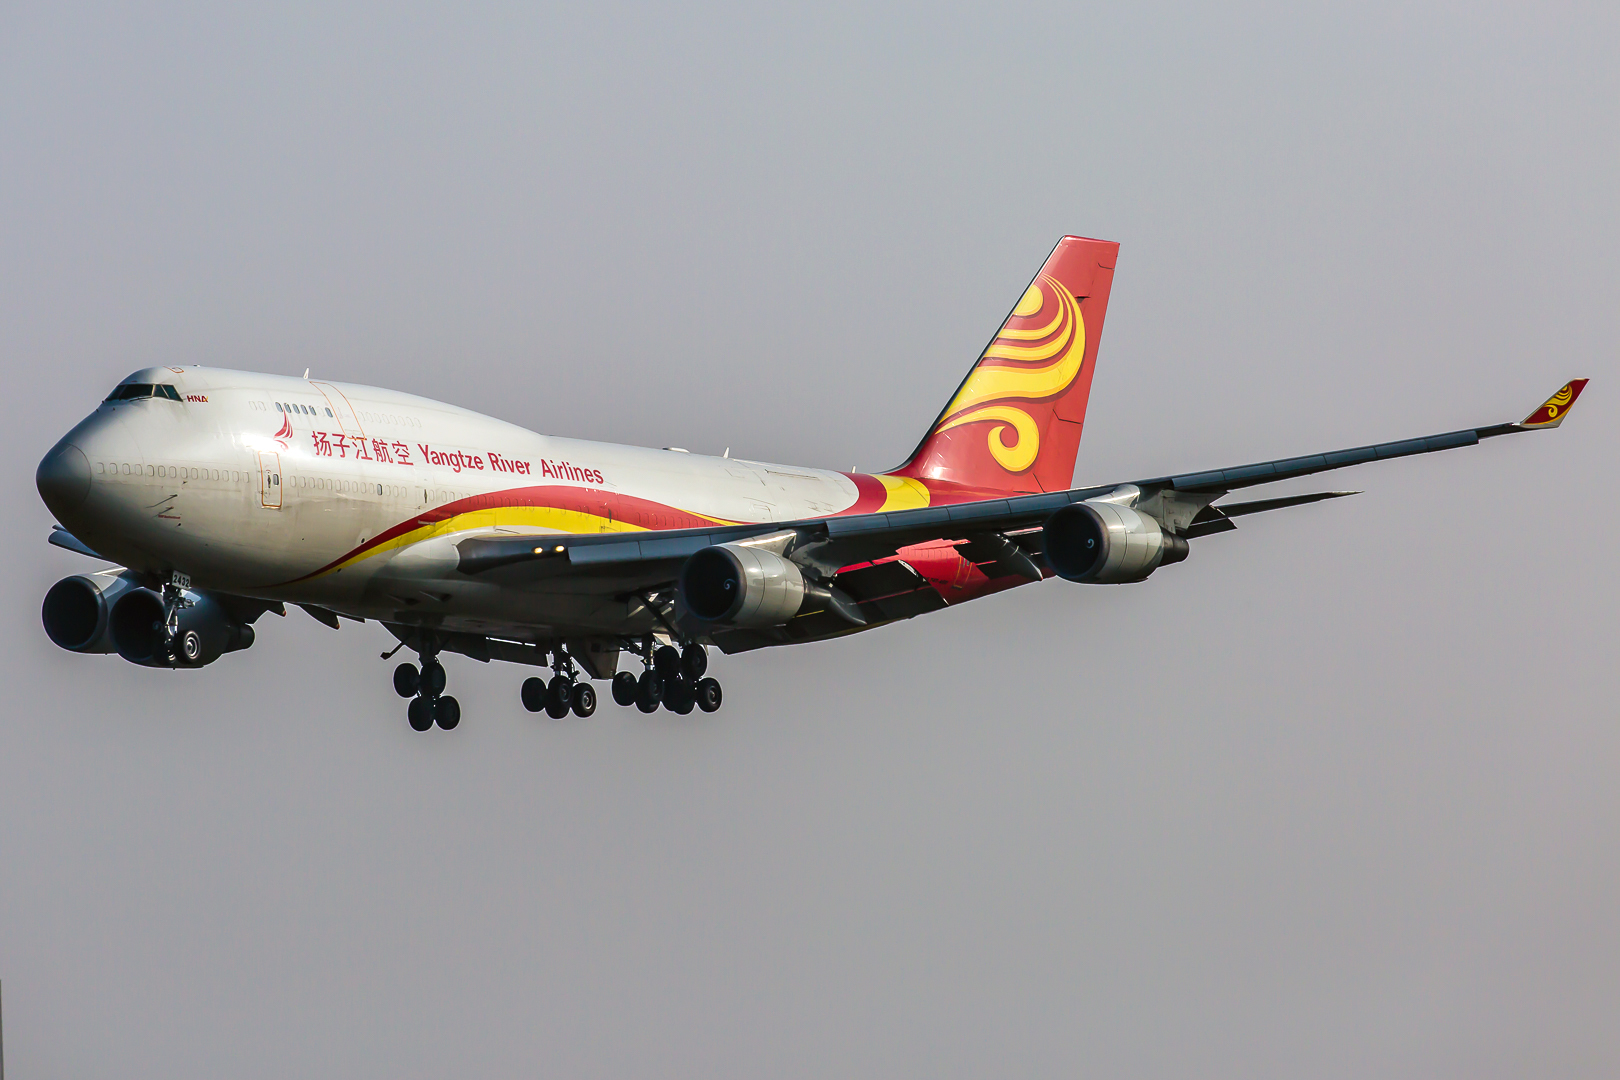 https://upload.wikimedia.org/wikipedia/commons/d/d8/Yangtze_River_Express_-_B-2322_-_Boeing_747-481_(BDSF)_(Y8-YZR).jpg